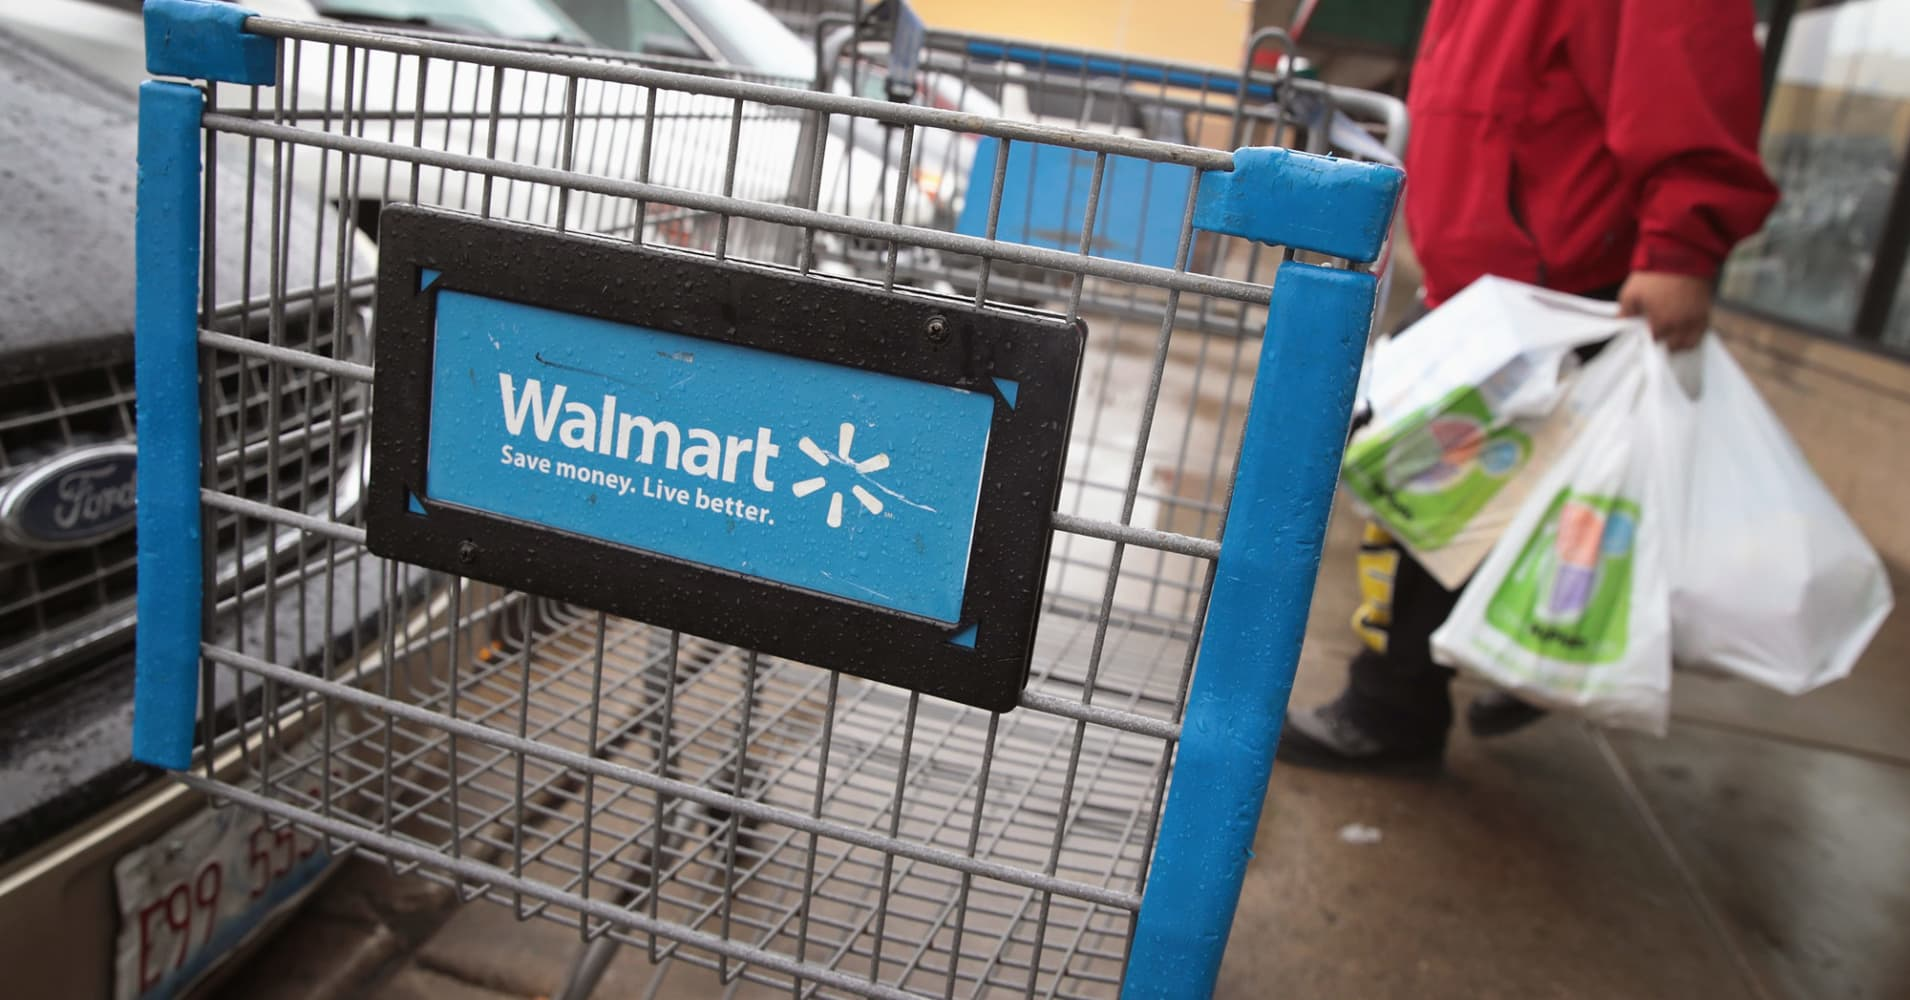 17-year-old Walmart employee quits over store intercom: 'Nobody should work here, ever'